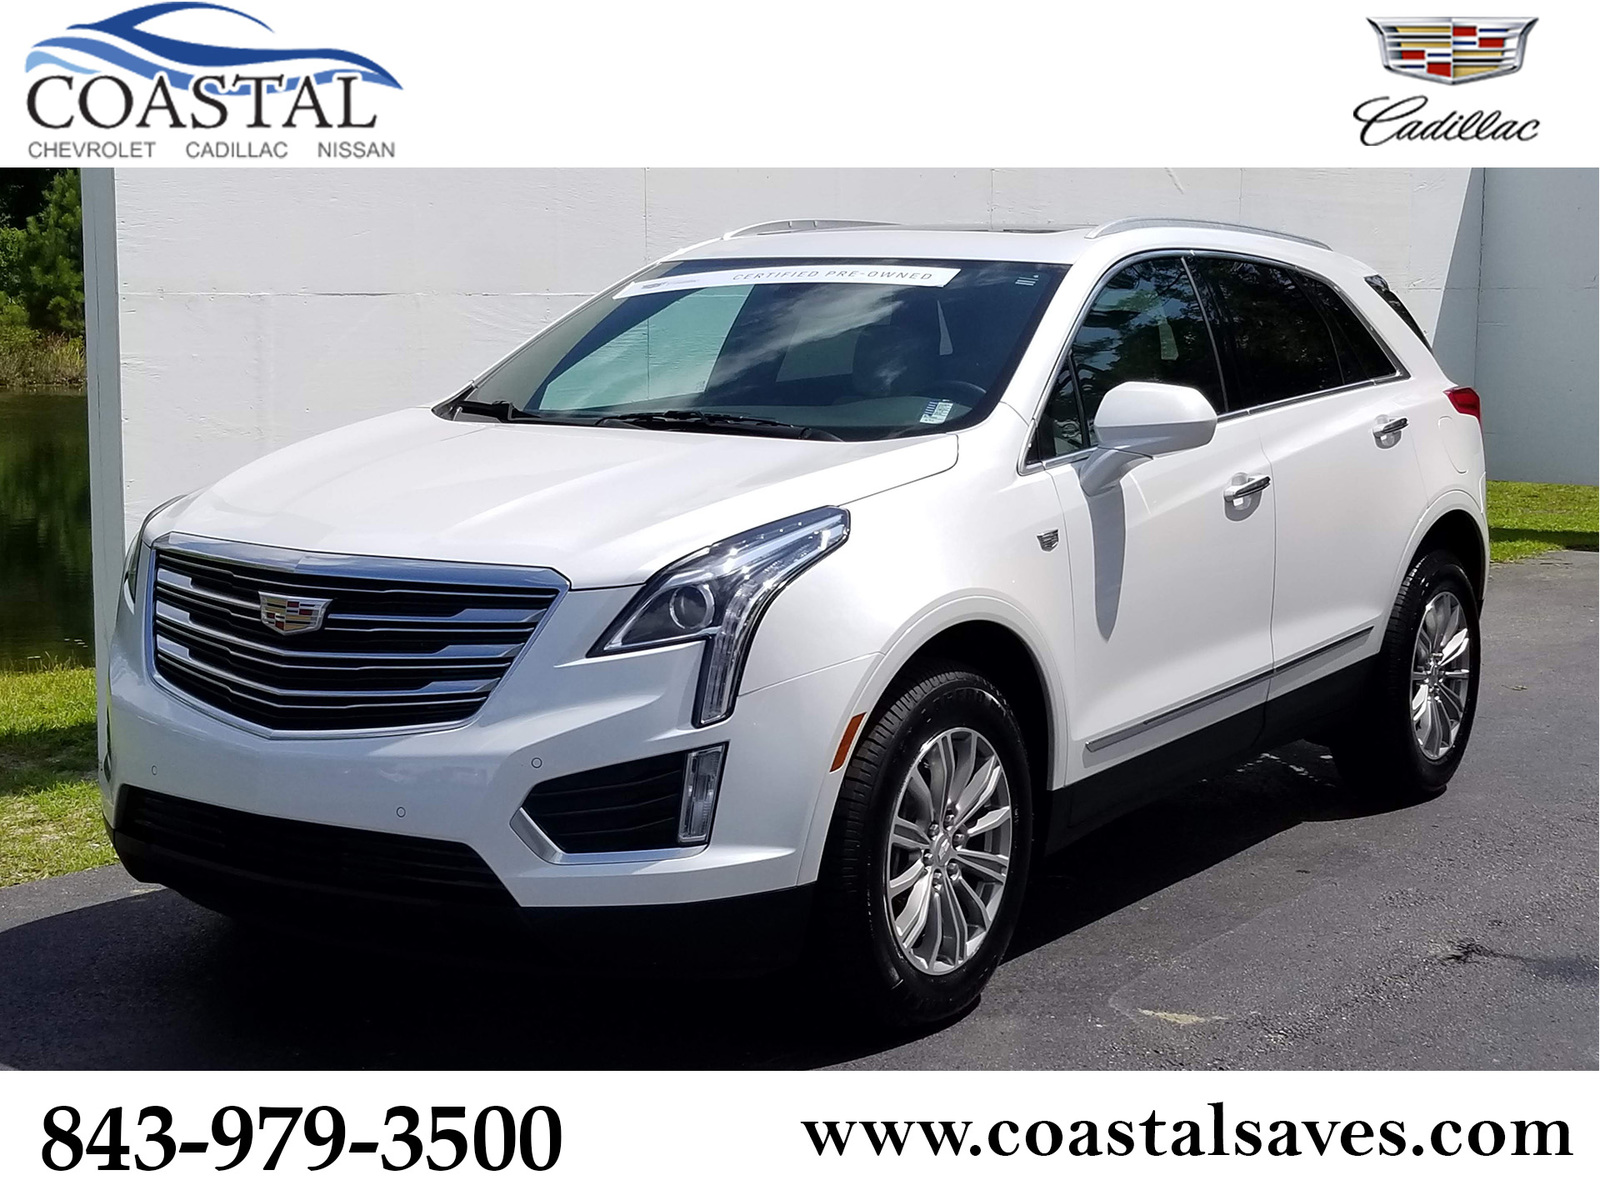 Certified Pre-Owned 2017 Cadillac XT5 FWD 4dr Luxury